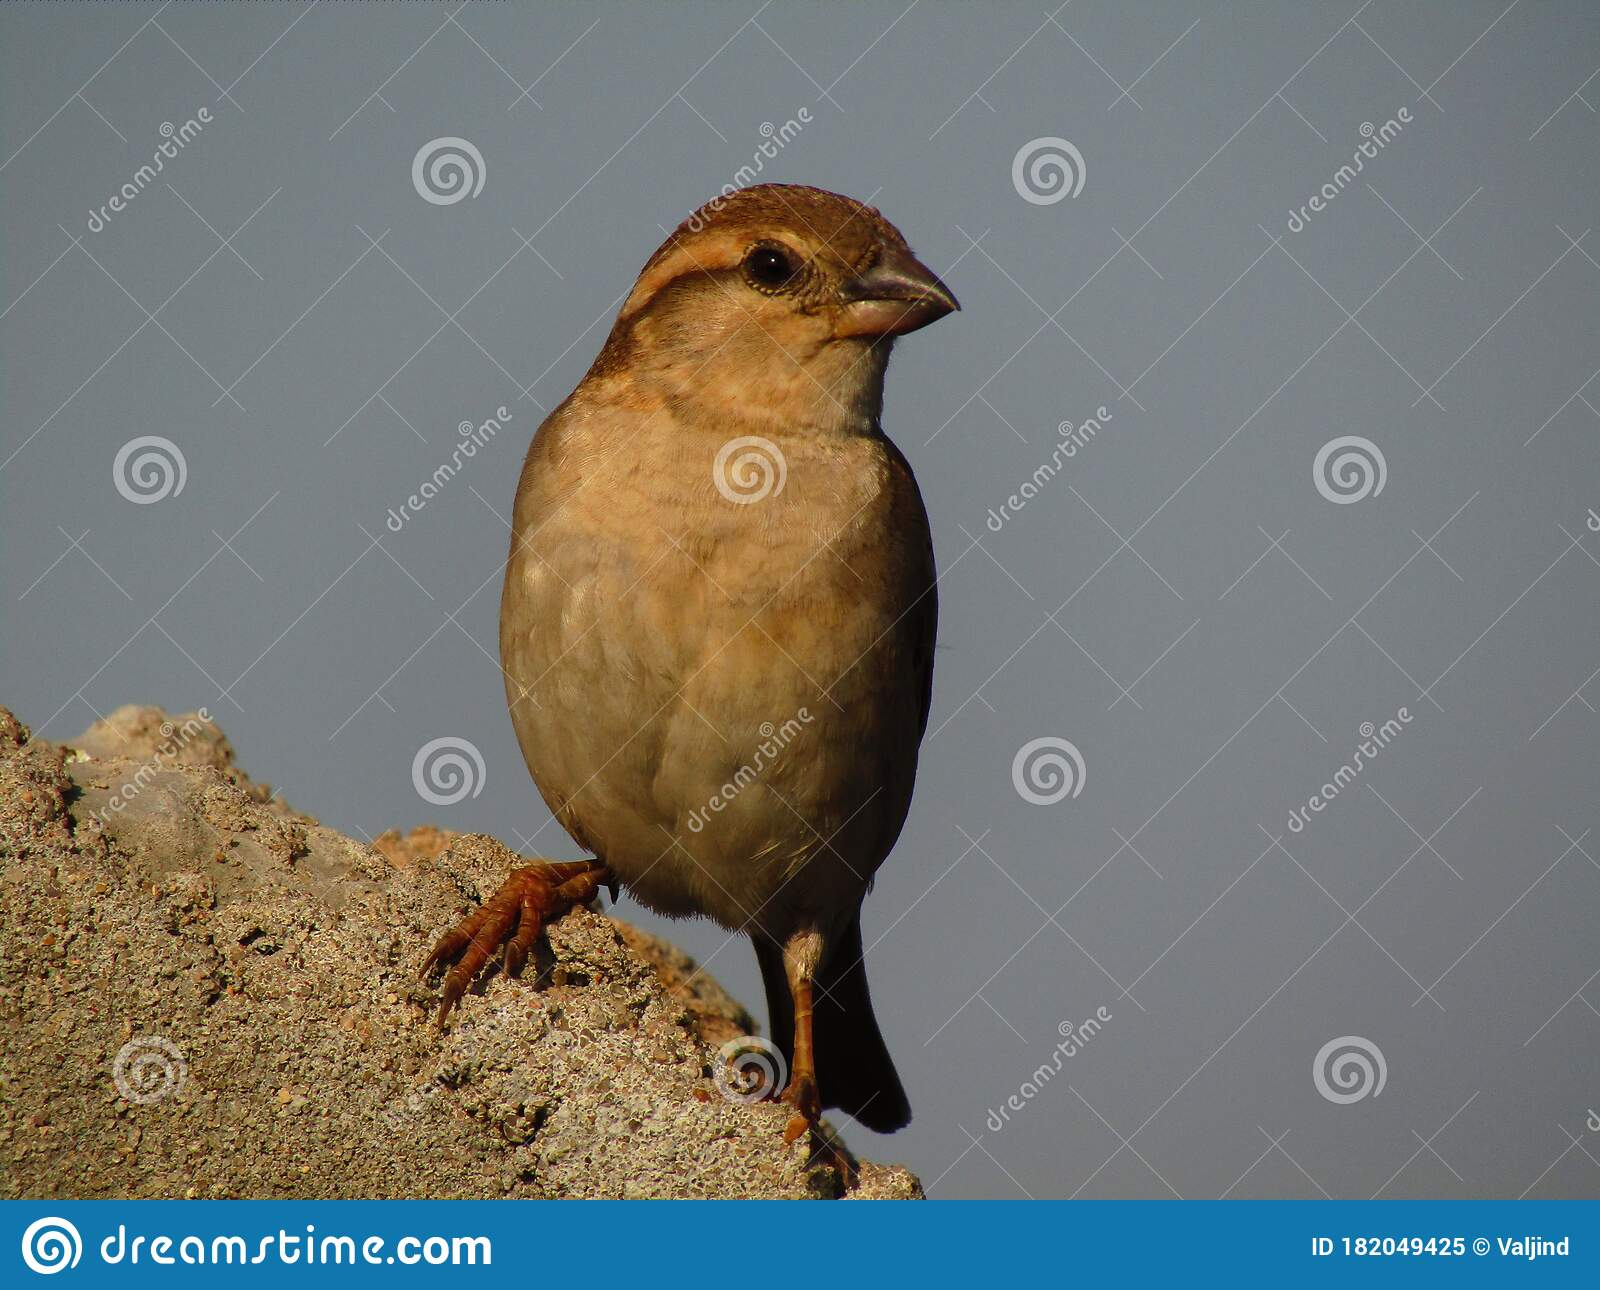 13 635 Beautiful Sparrow Photos Free Royalty Free Stock Photos From Dreamstime